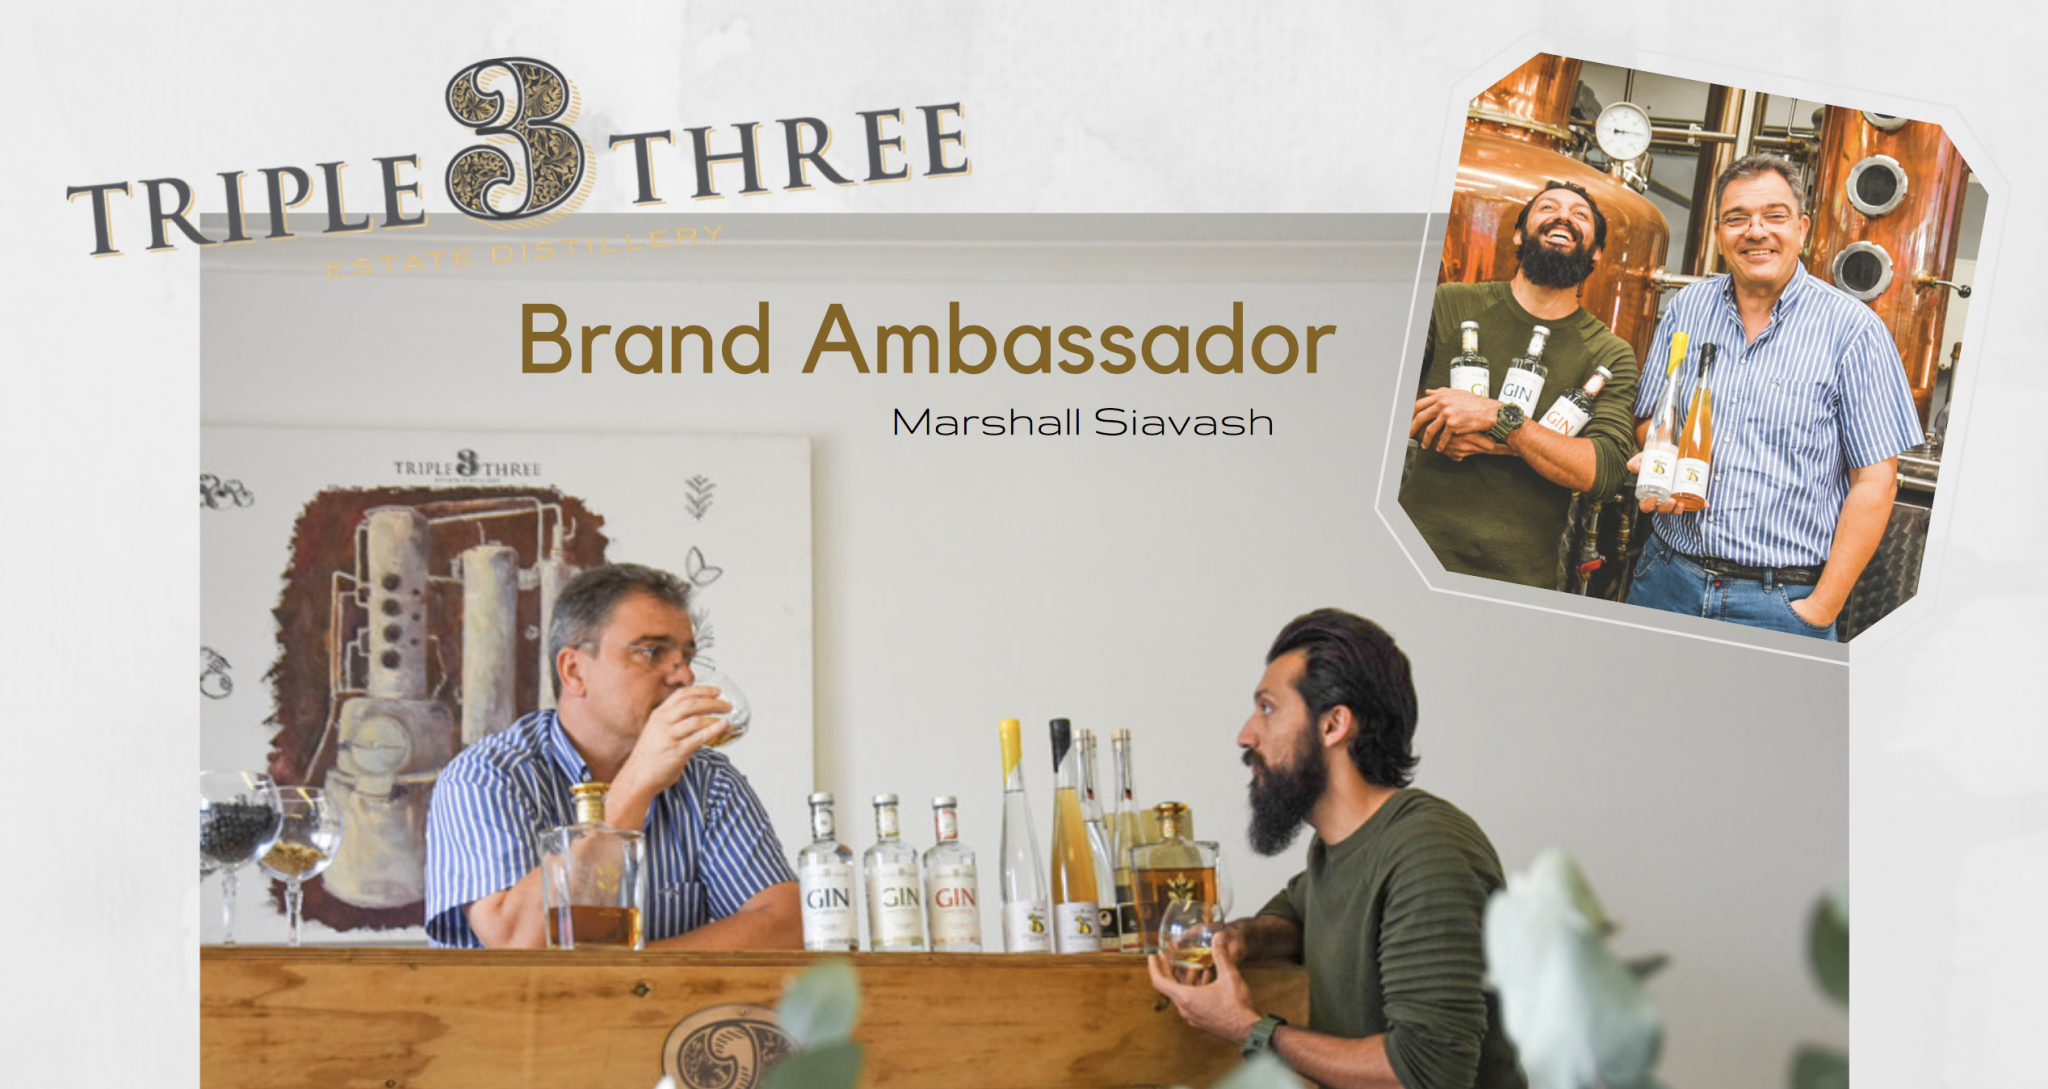 Triple Three Gin Brand Ambassador